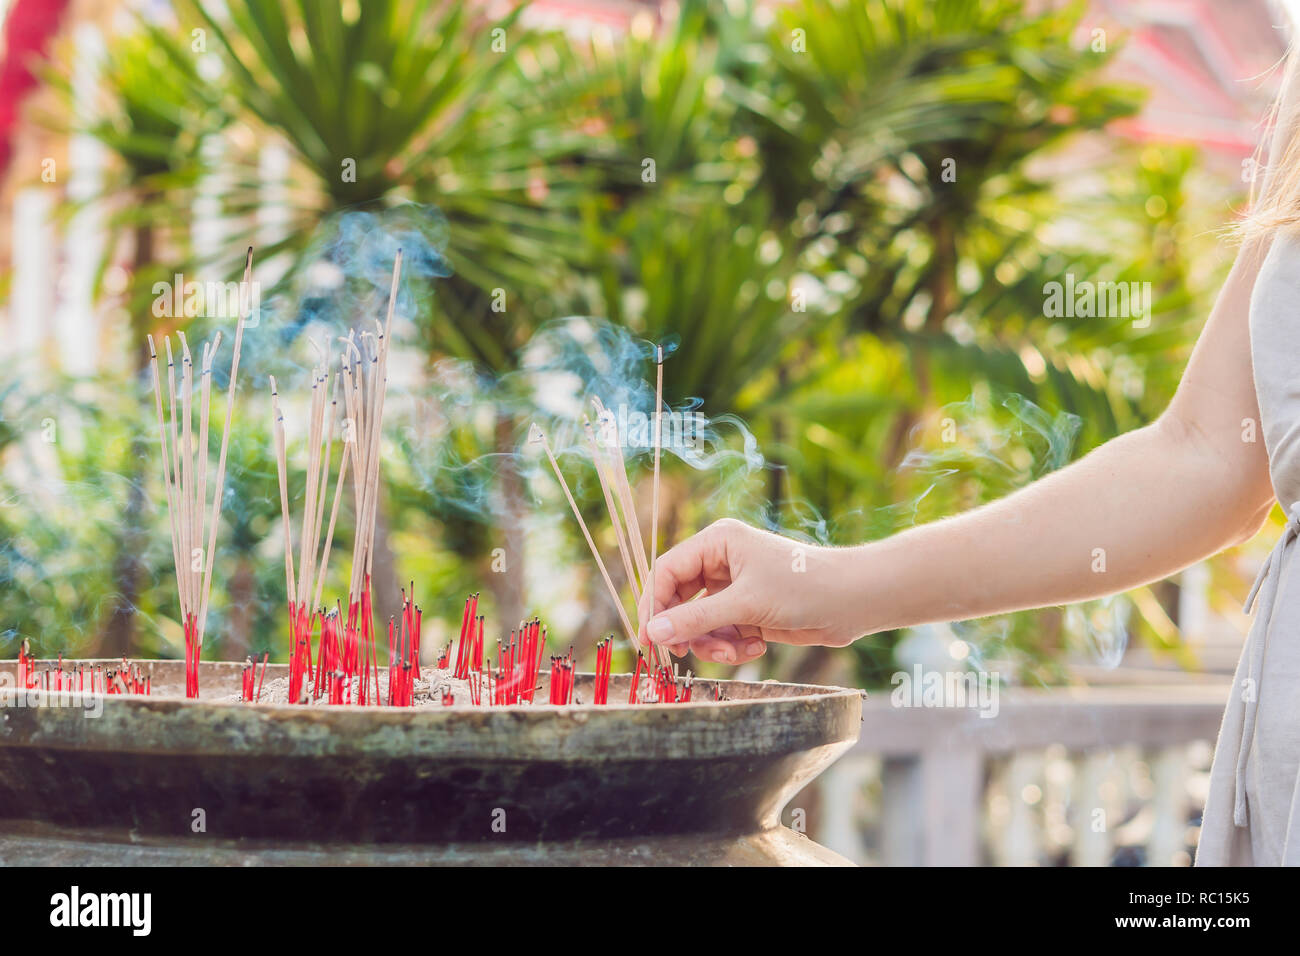 Smell the smoke of Incense, The smoke of joss stick in